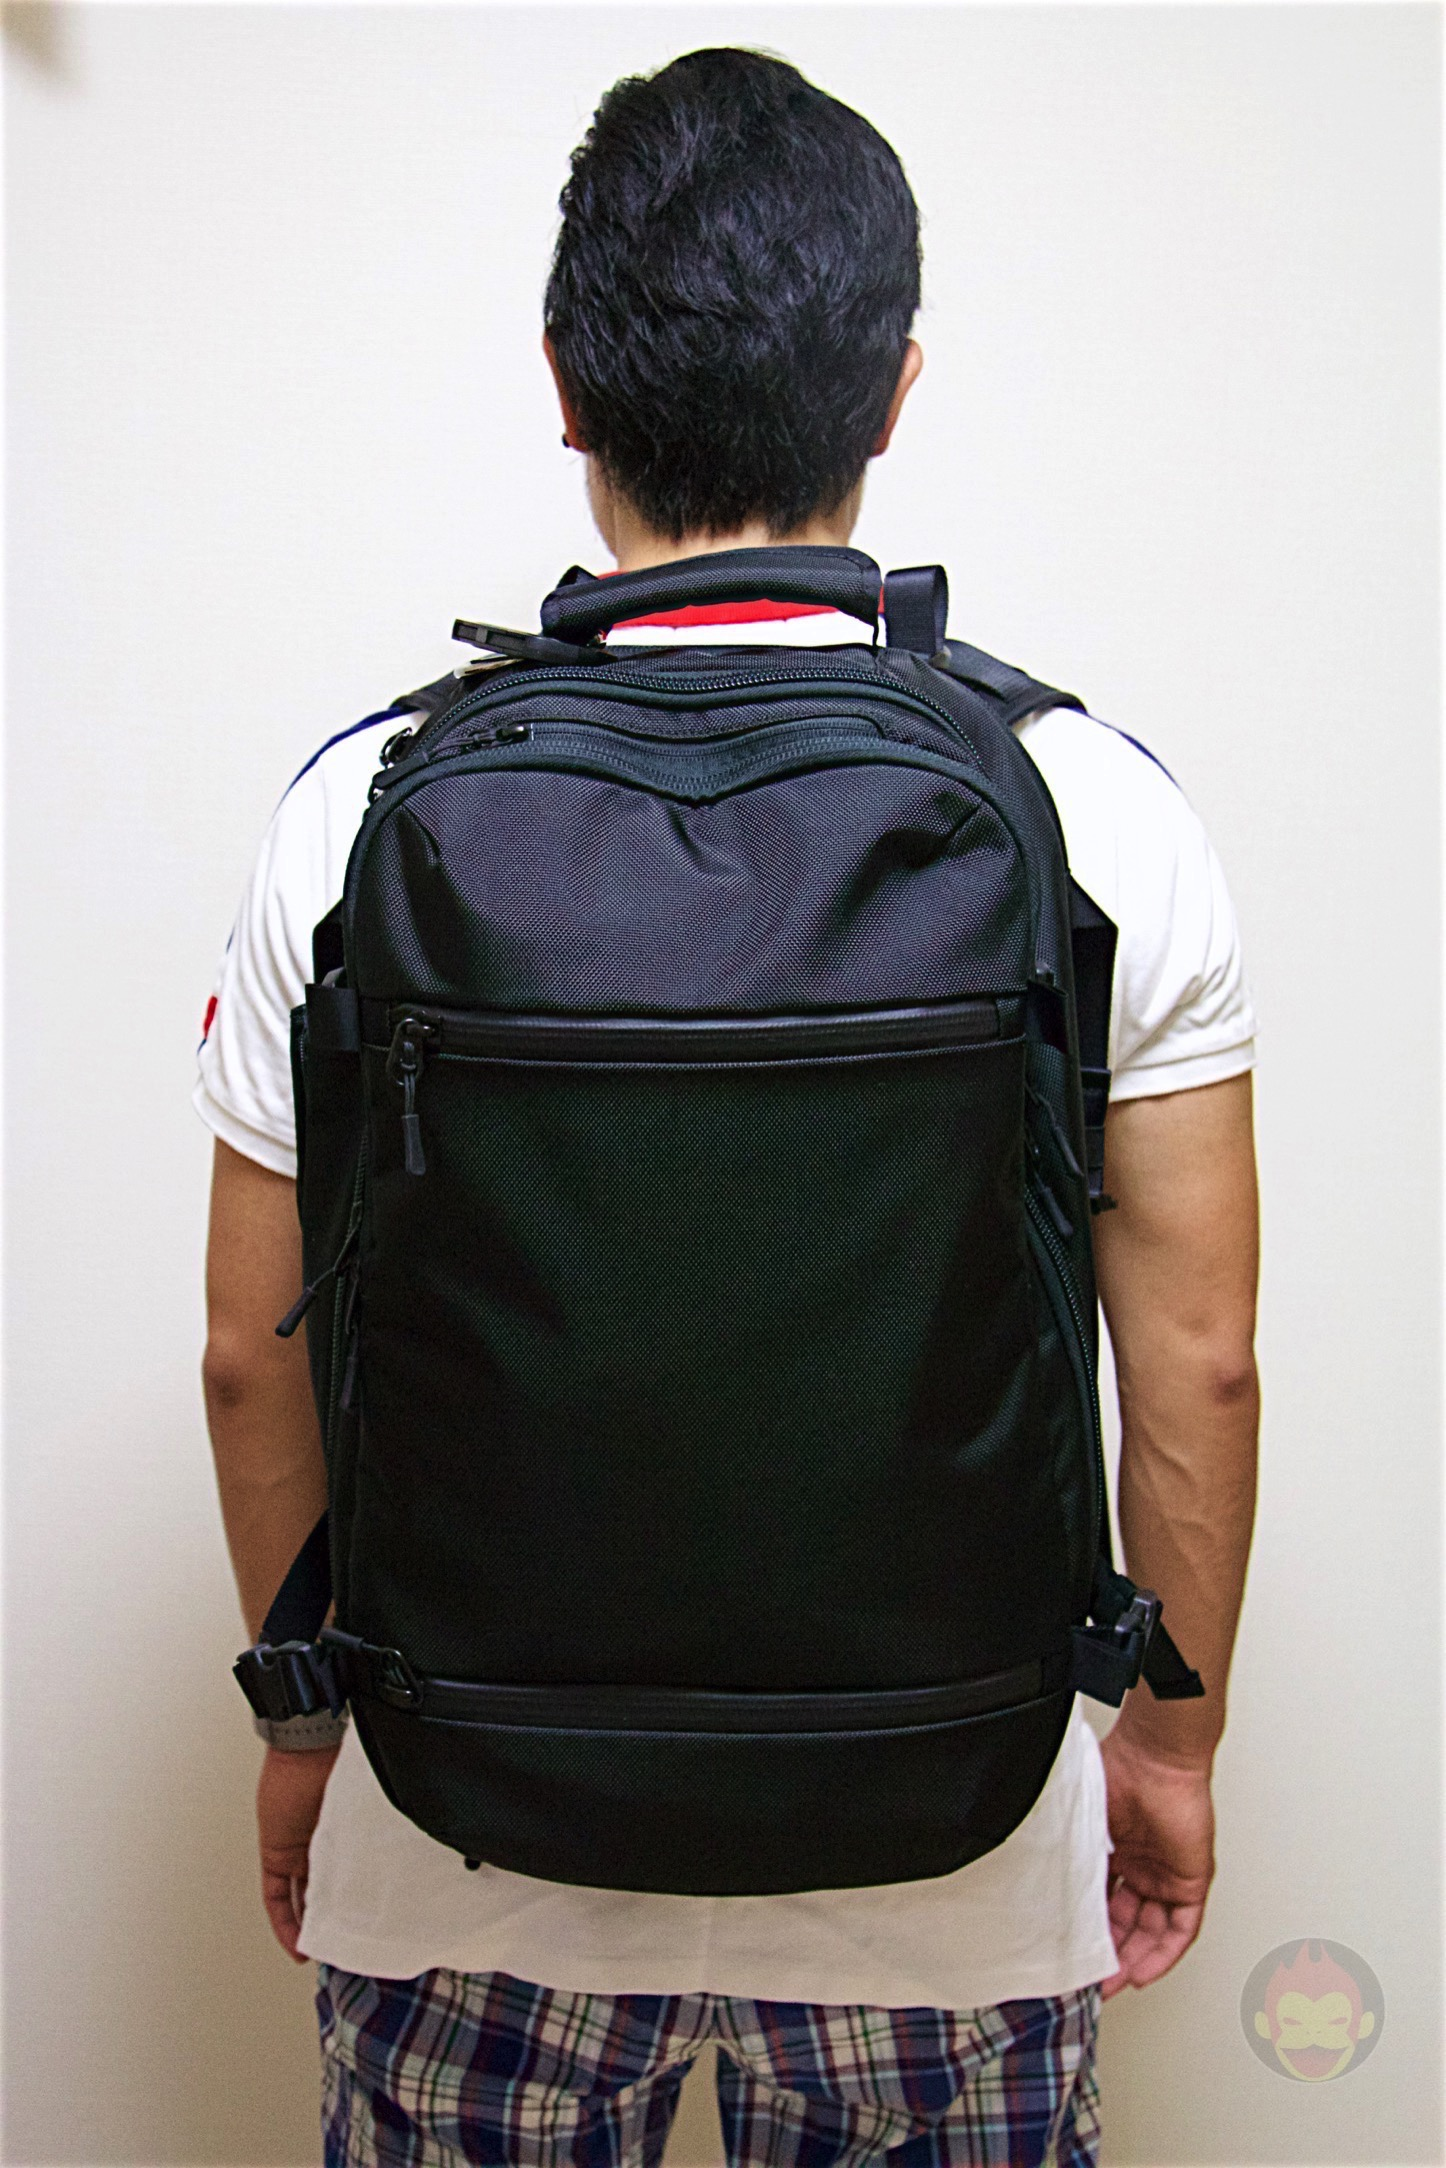 Aer-Travel-BackPack-on-Kickstarter-39.jpg